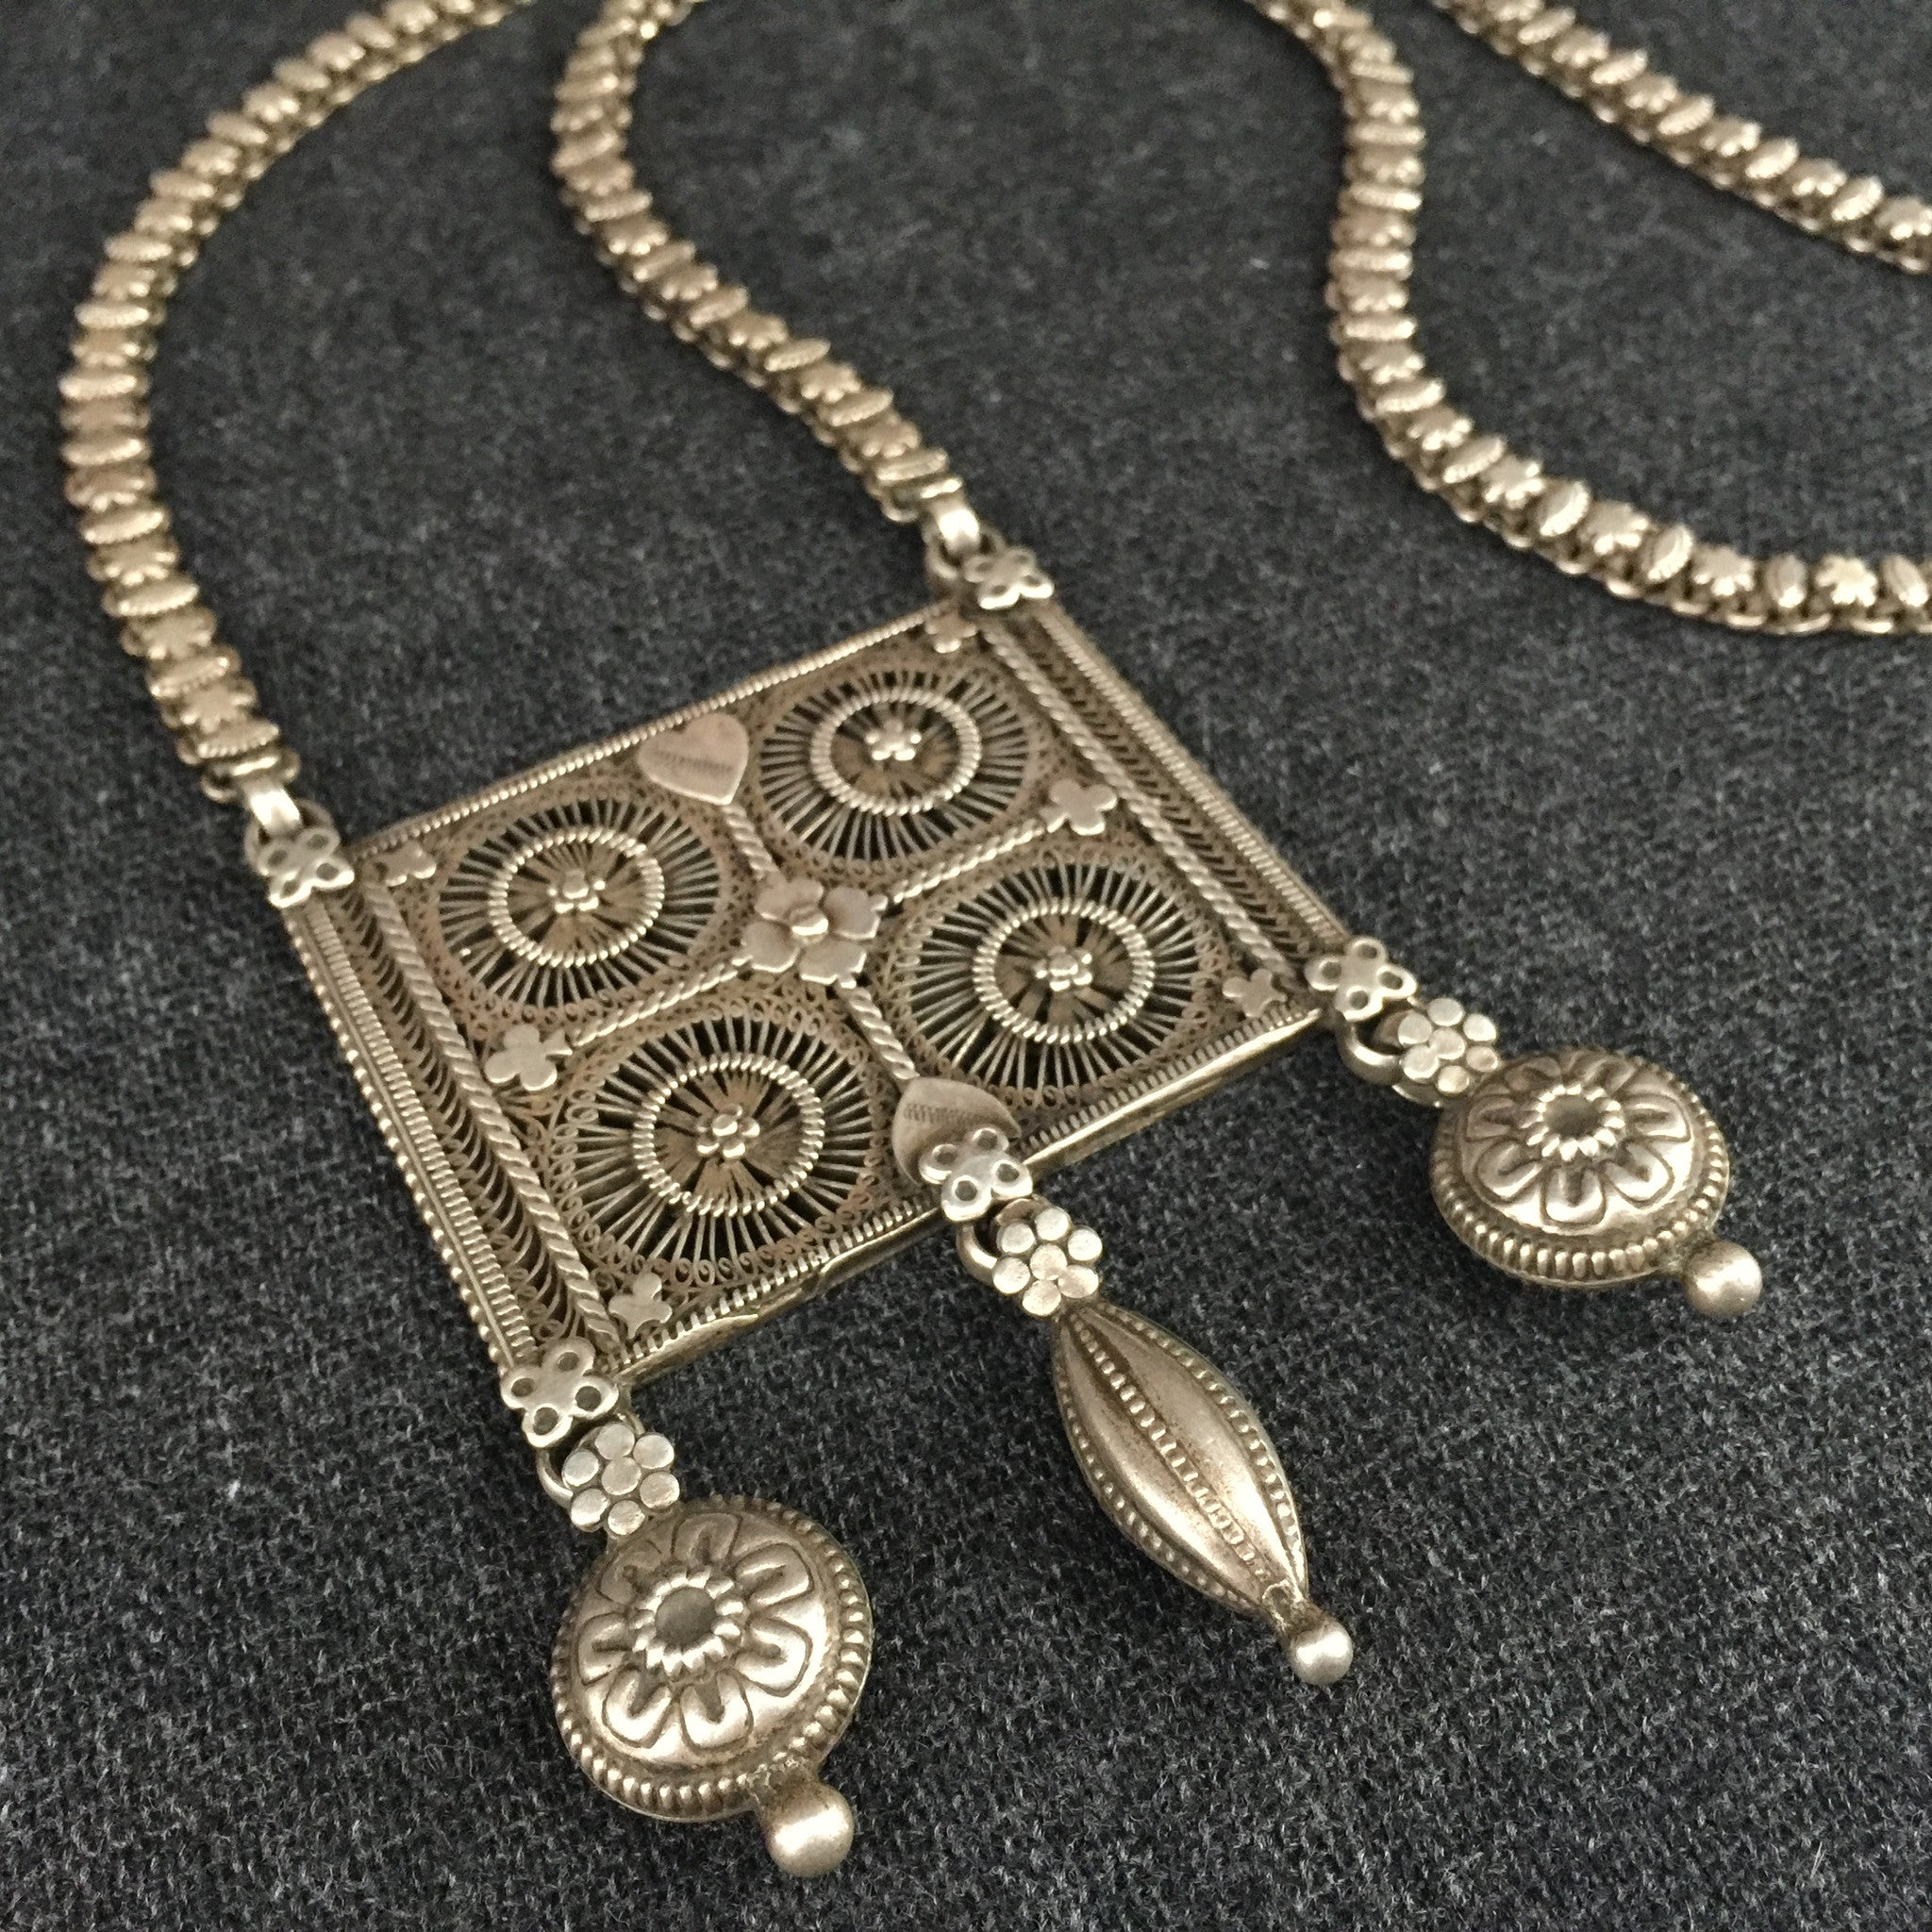 lotus mandala langhong spiritual necklace silver zenheavens retro om products jewelry geometry religious pendant antique tibetan tibet amulet